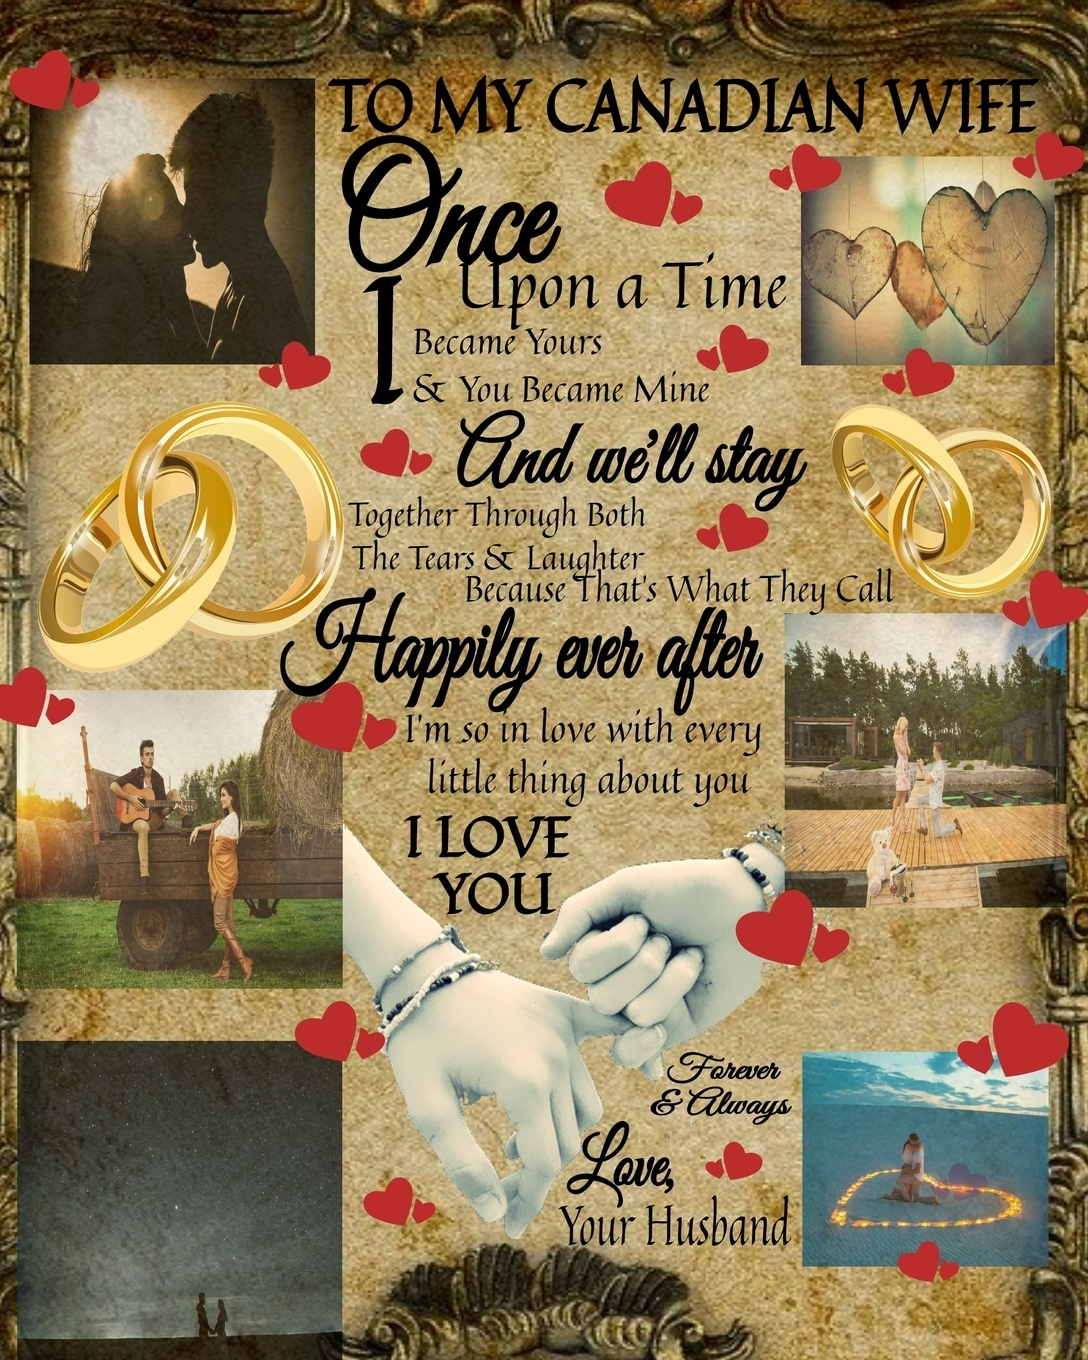 Scarlette Heart. To My Canada Wife Once Upon A Time I Became Yours & You Became Mine And We'll Stay Together Through Both The Tears & Laughter. 100 Reasons Why I Love You Fill In The Blank - Paperback Black Lines Composition  Notepad To Write In Prayer For Your Hu...